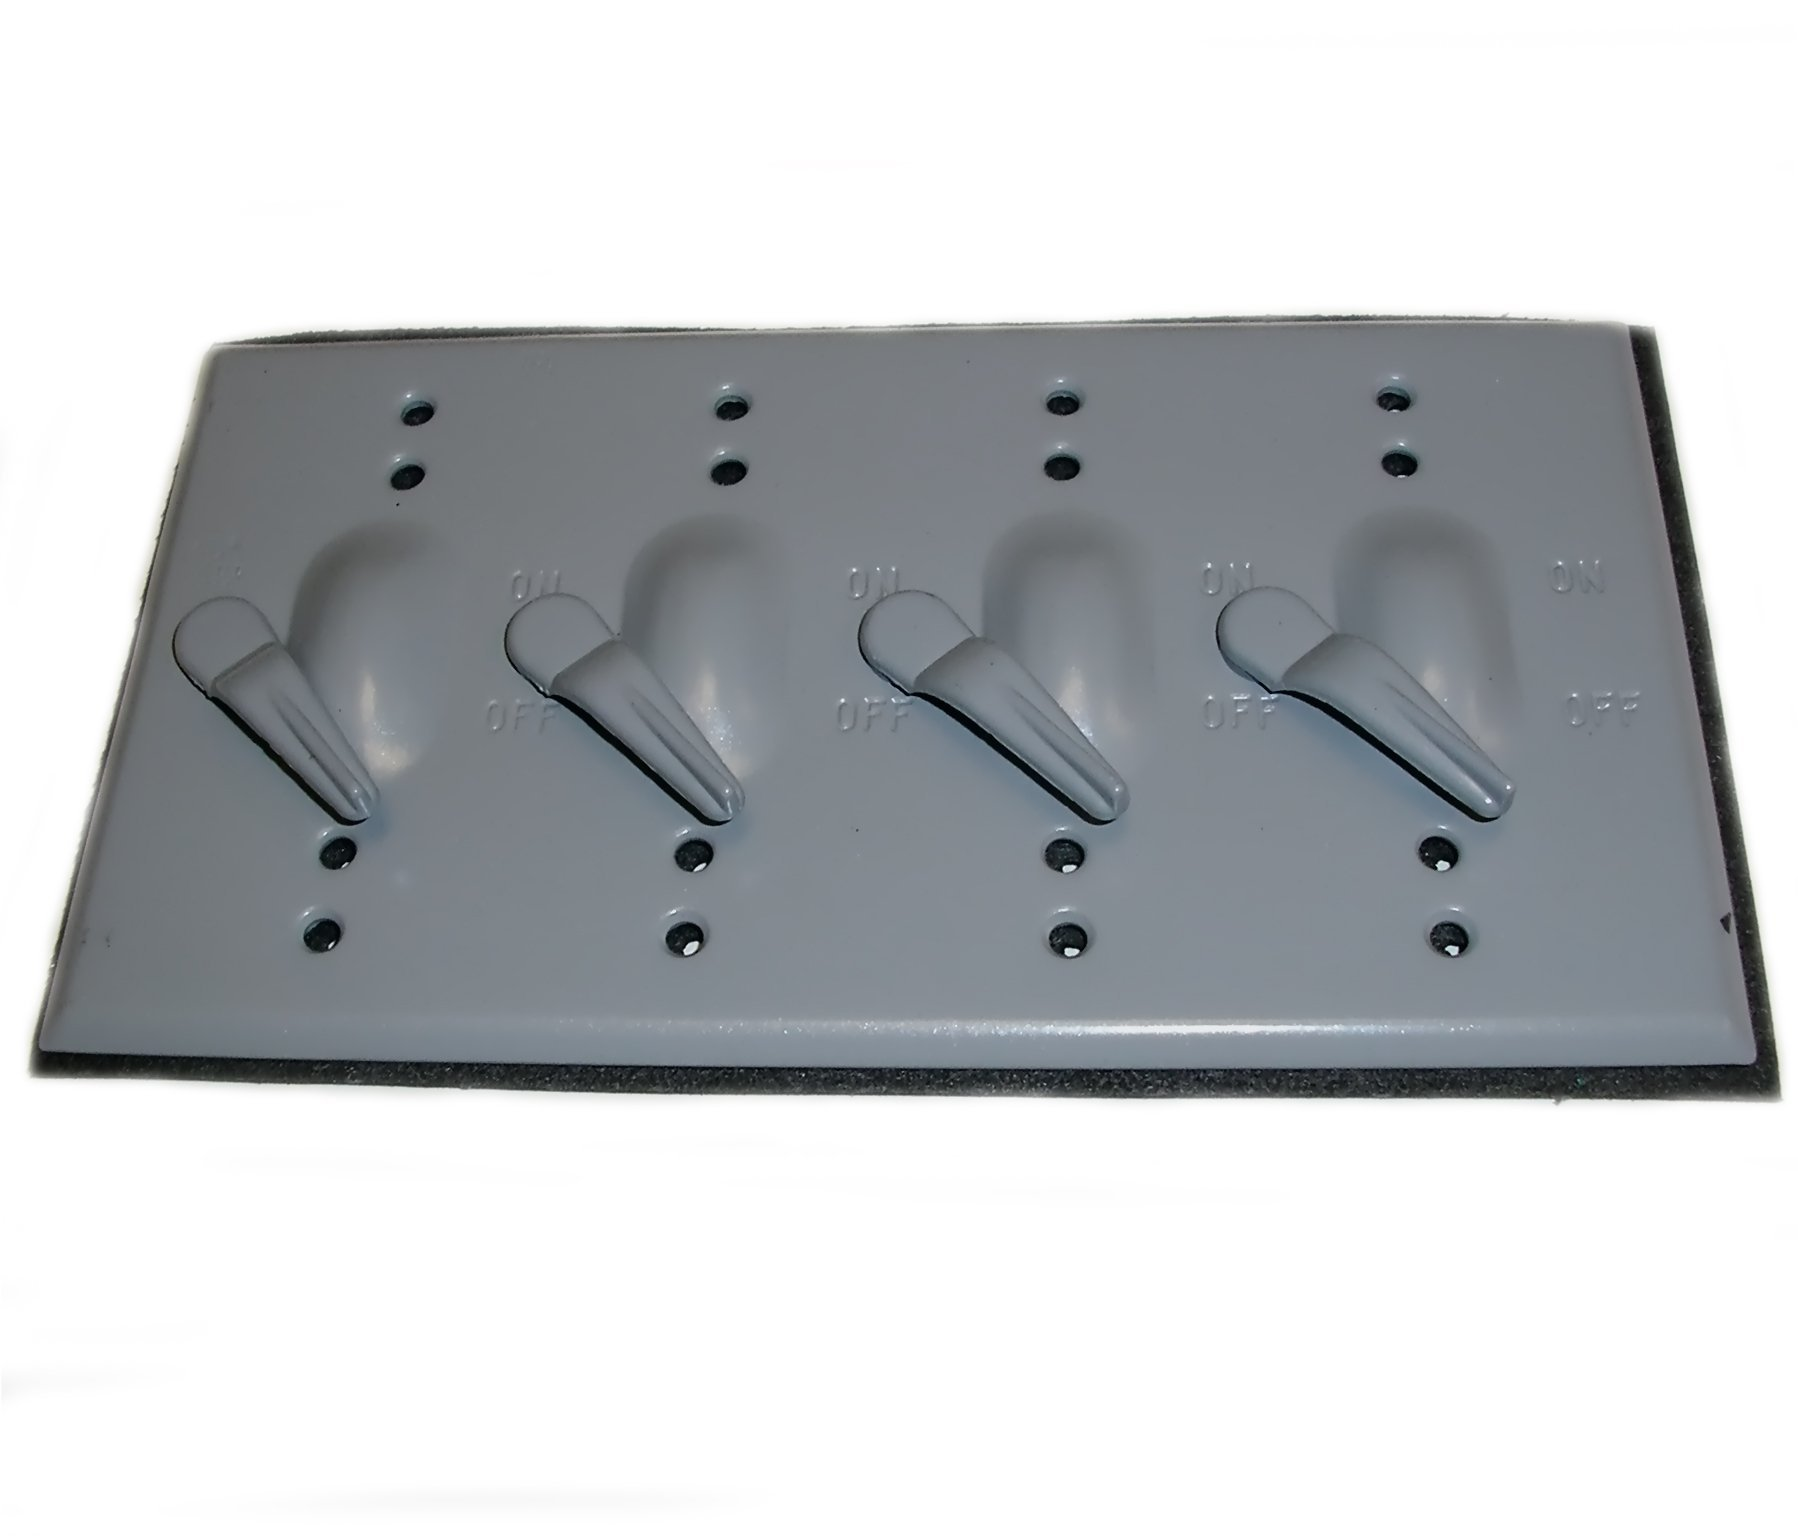 Mulberry Metal 30478 Weatherproof Cover, 4-Gang, Type: 4 Lever Switch, Die Cast